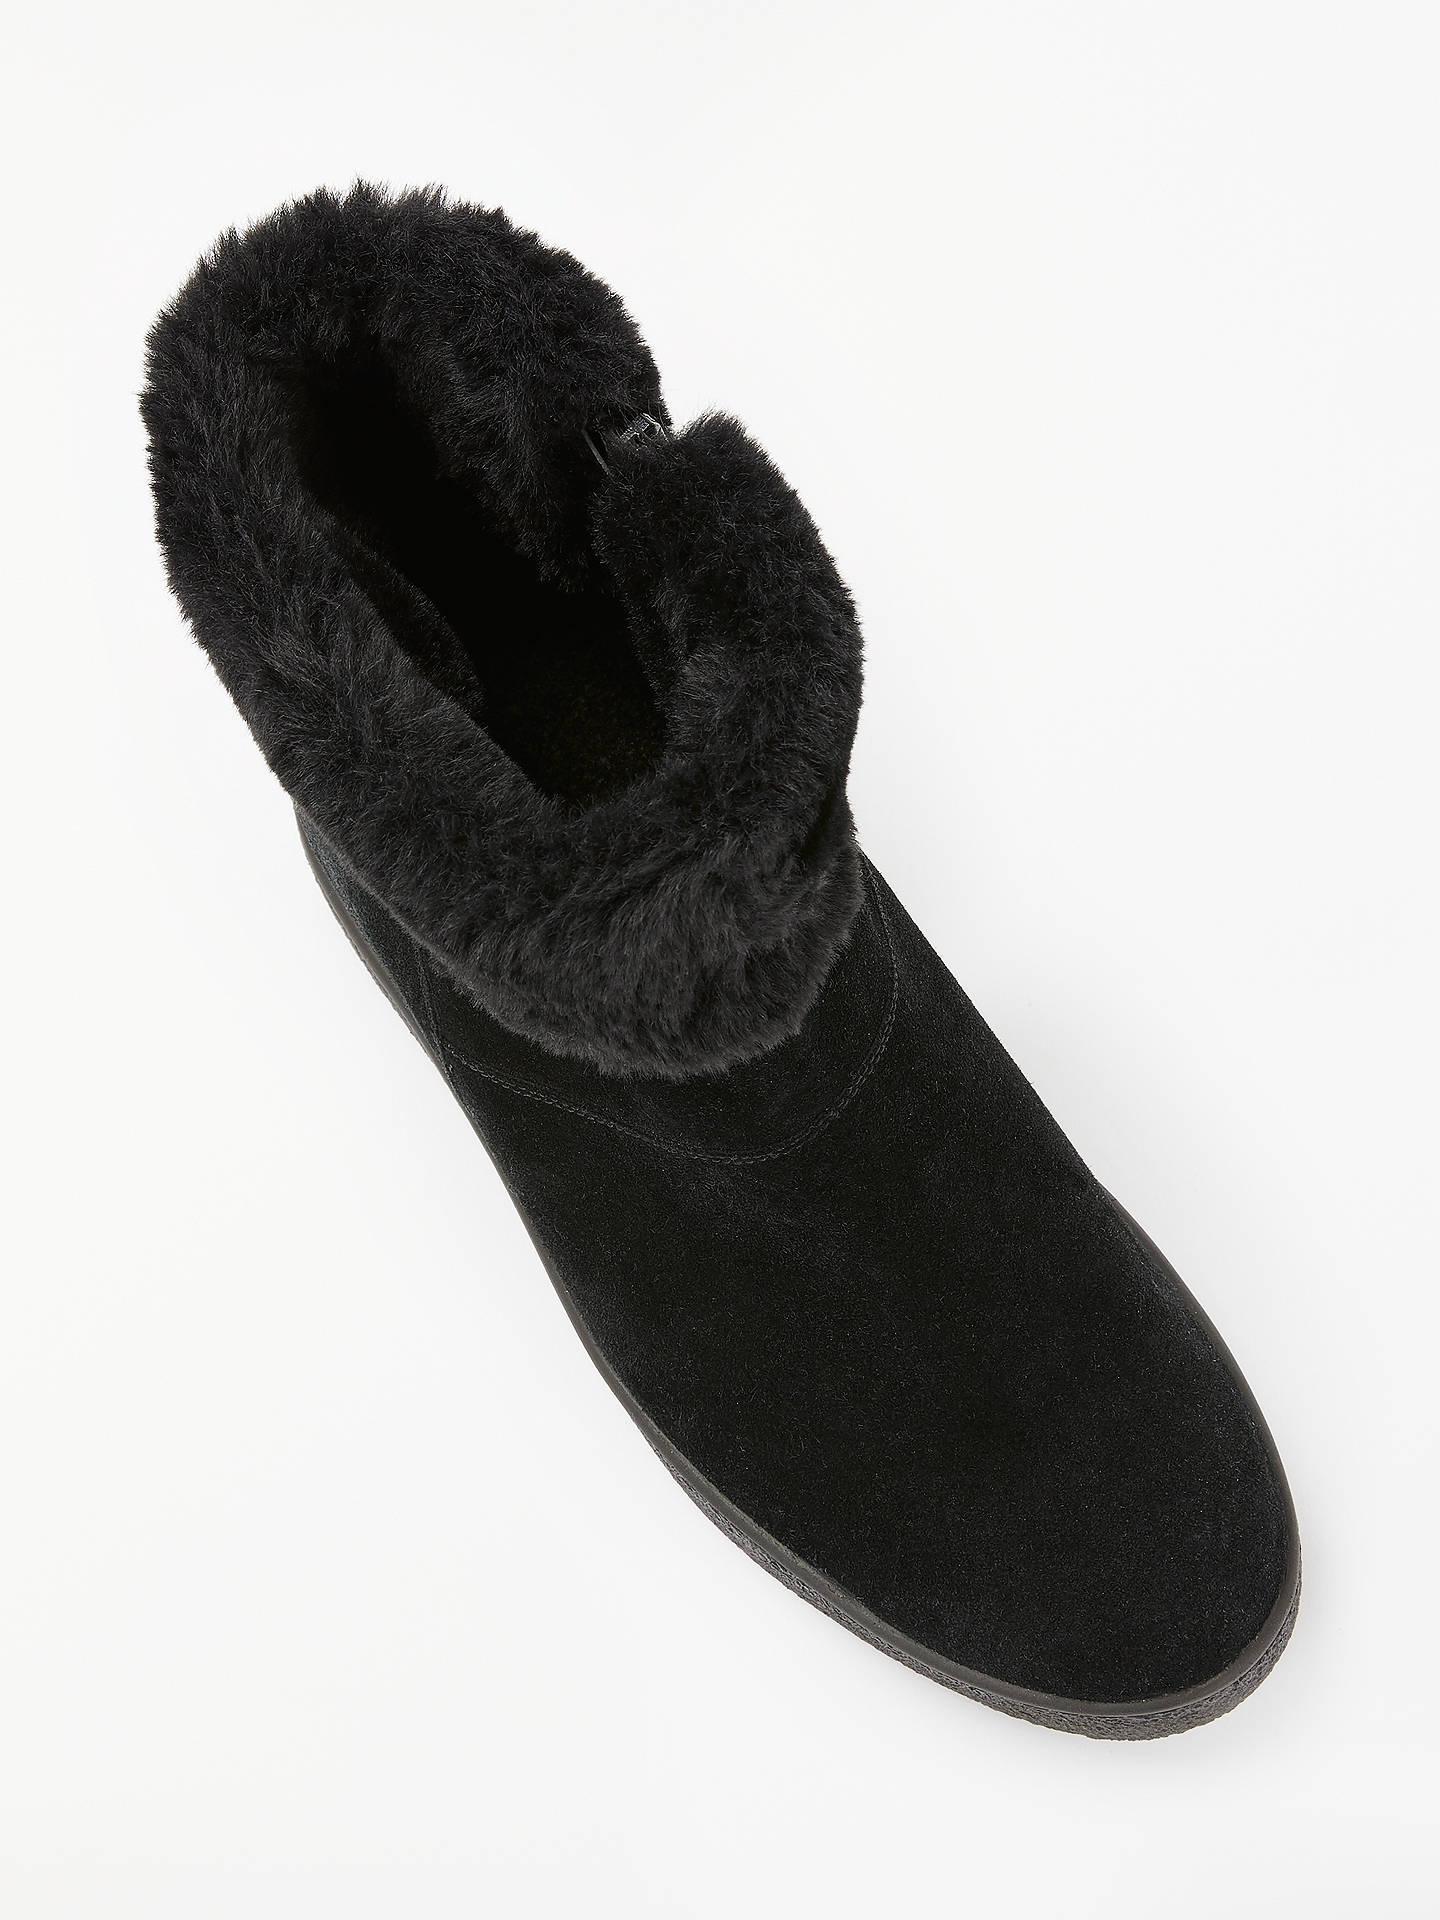 Buy John Lewis & Partners Designed for Comfort Quincy Faux Fur Collar Boots, Black Suede, 7 Online at johnlewis.com